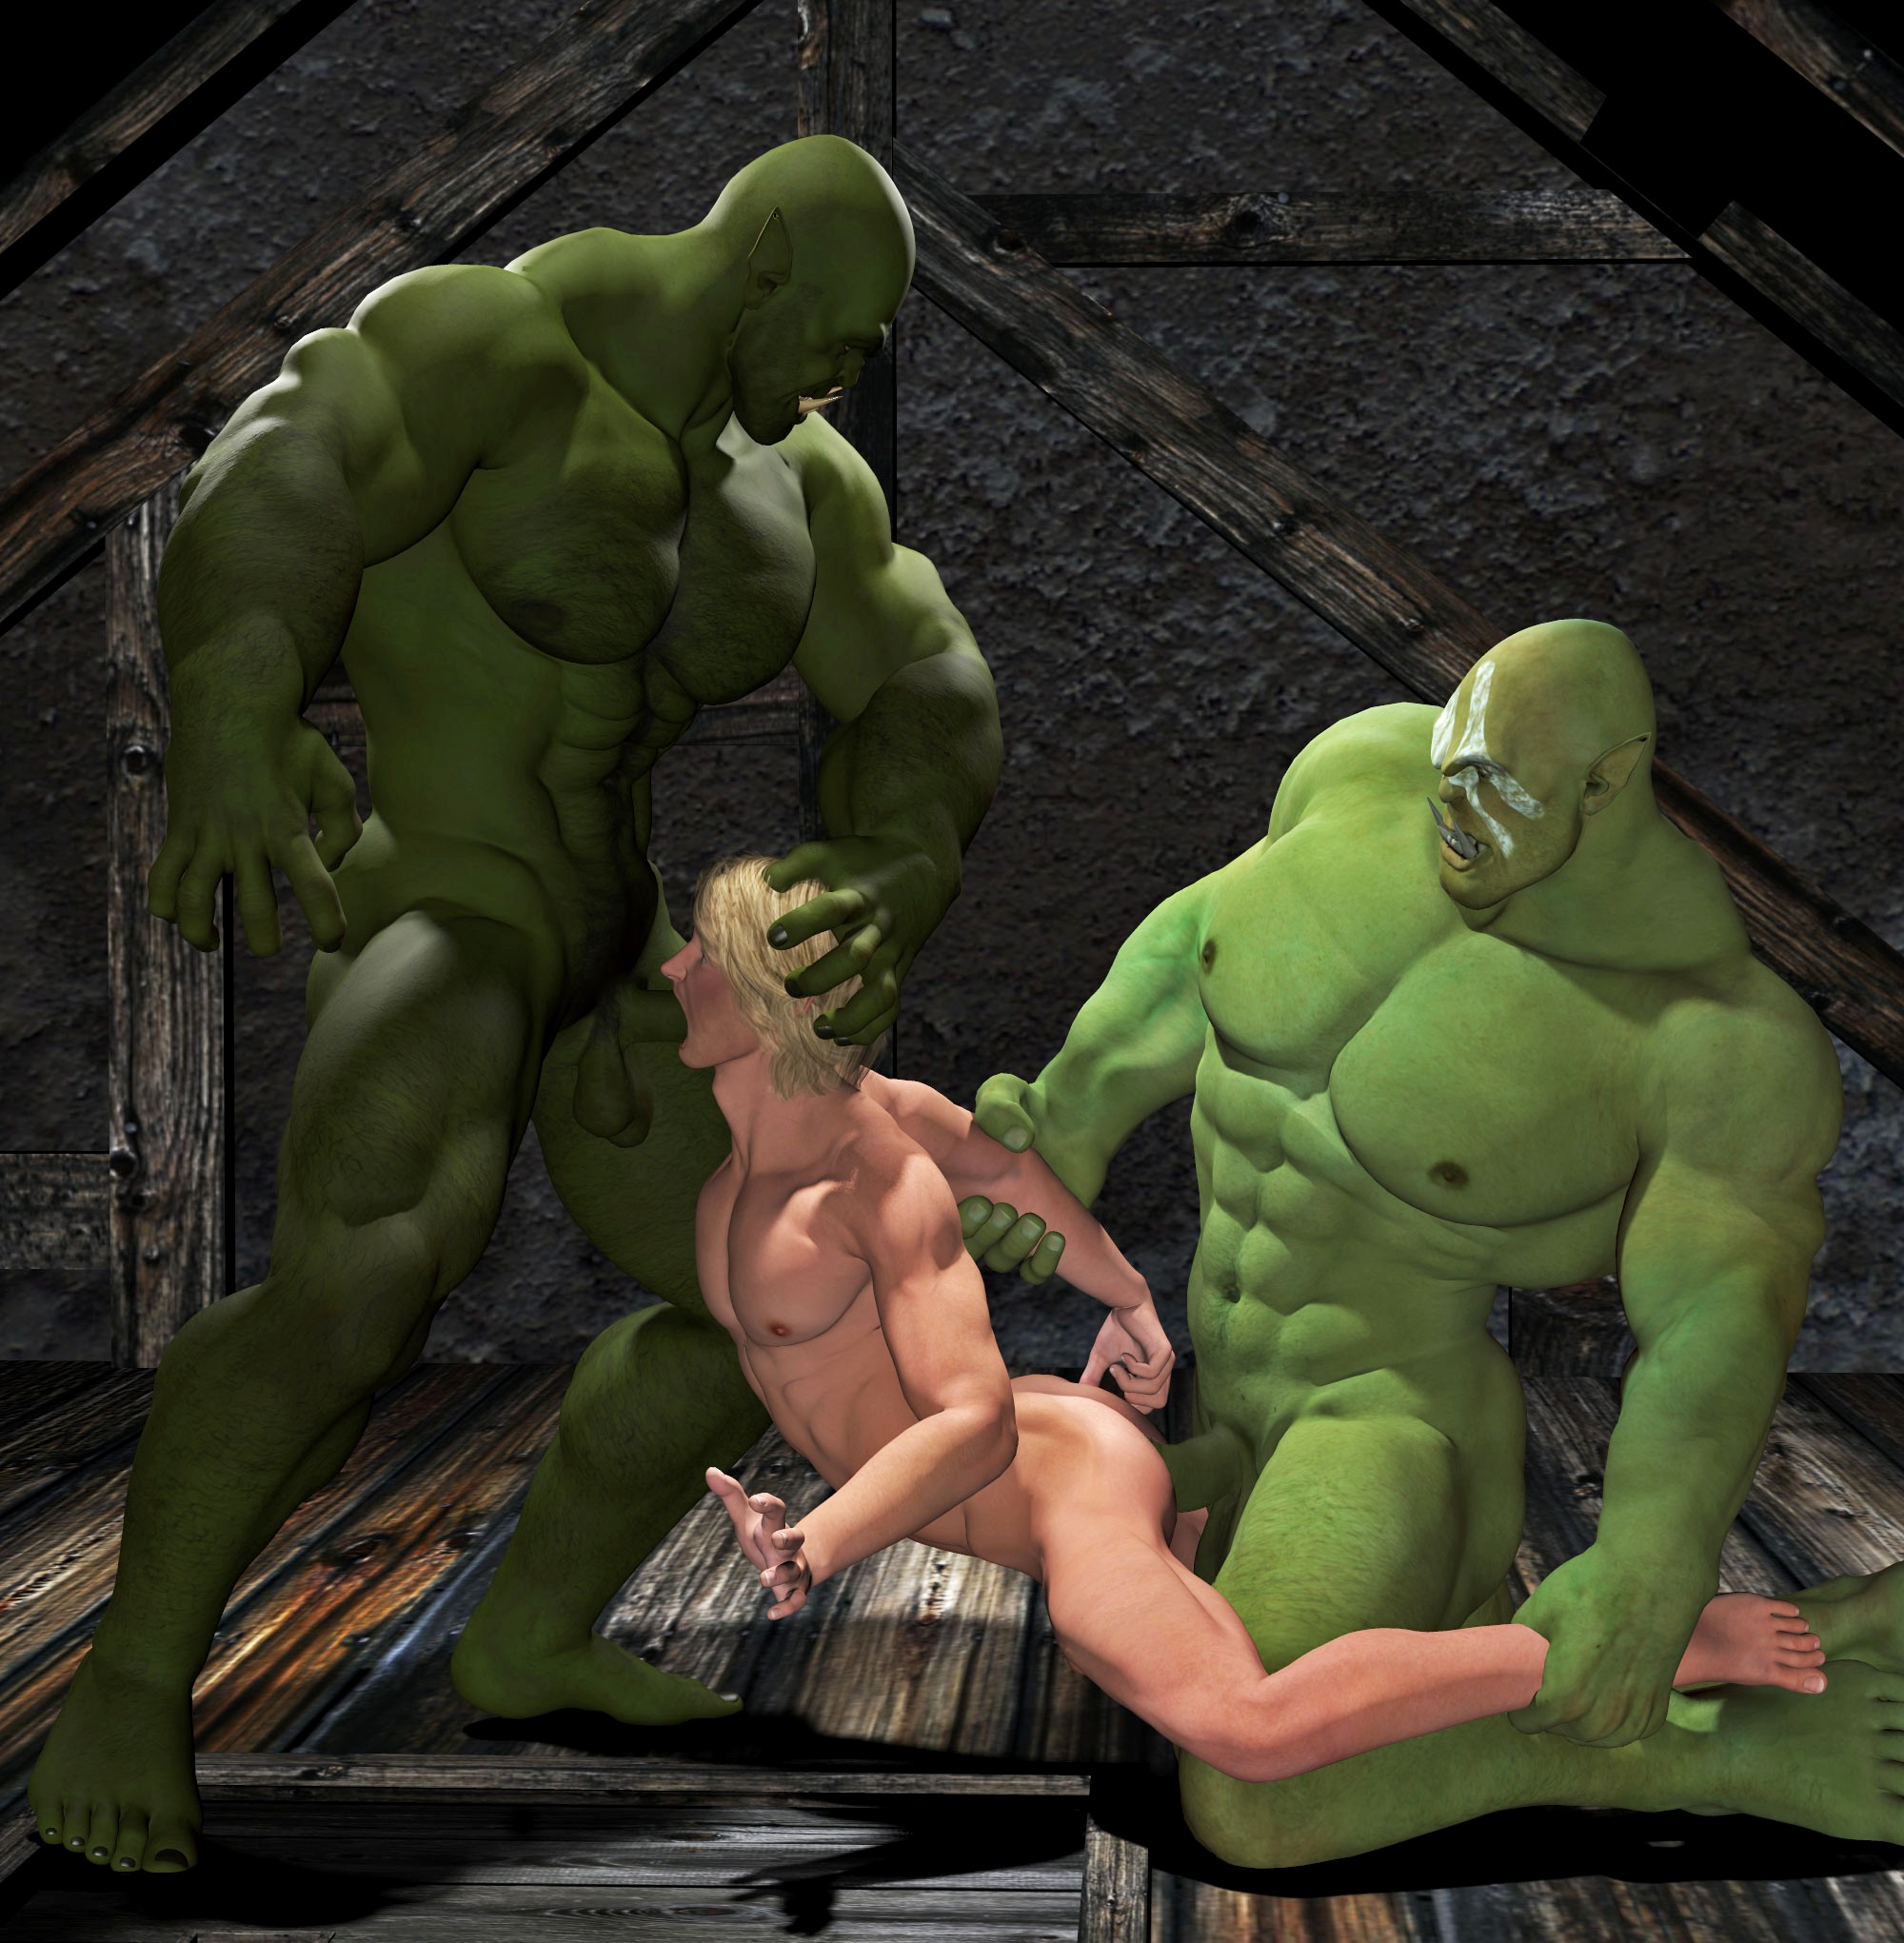 Fantasy monsters sucking human male cocks nsfw slaves